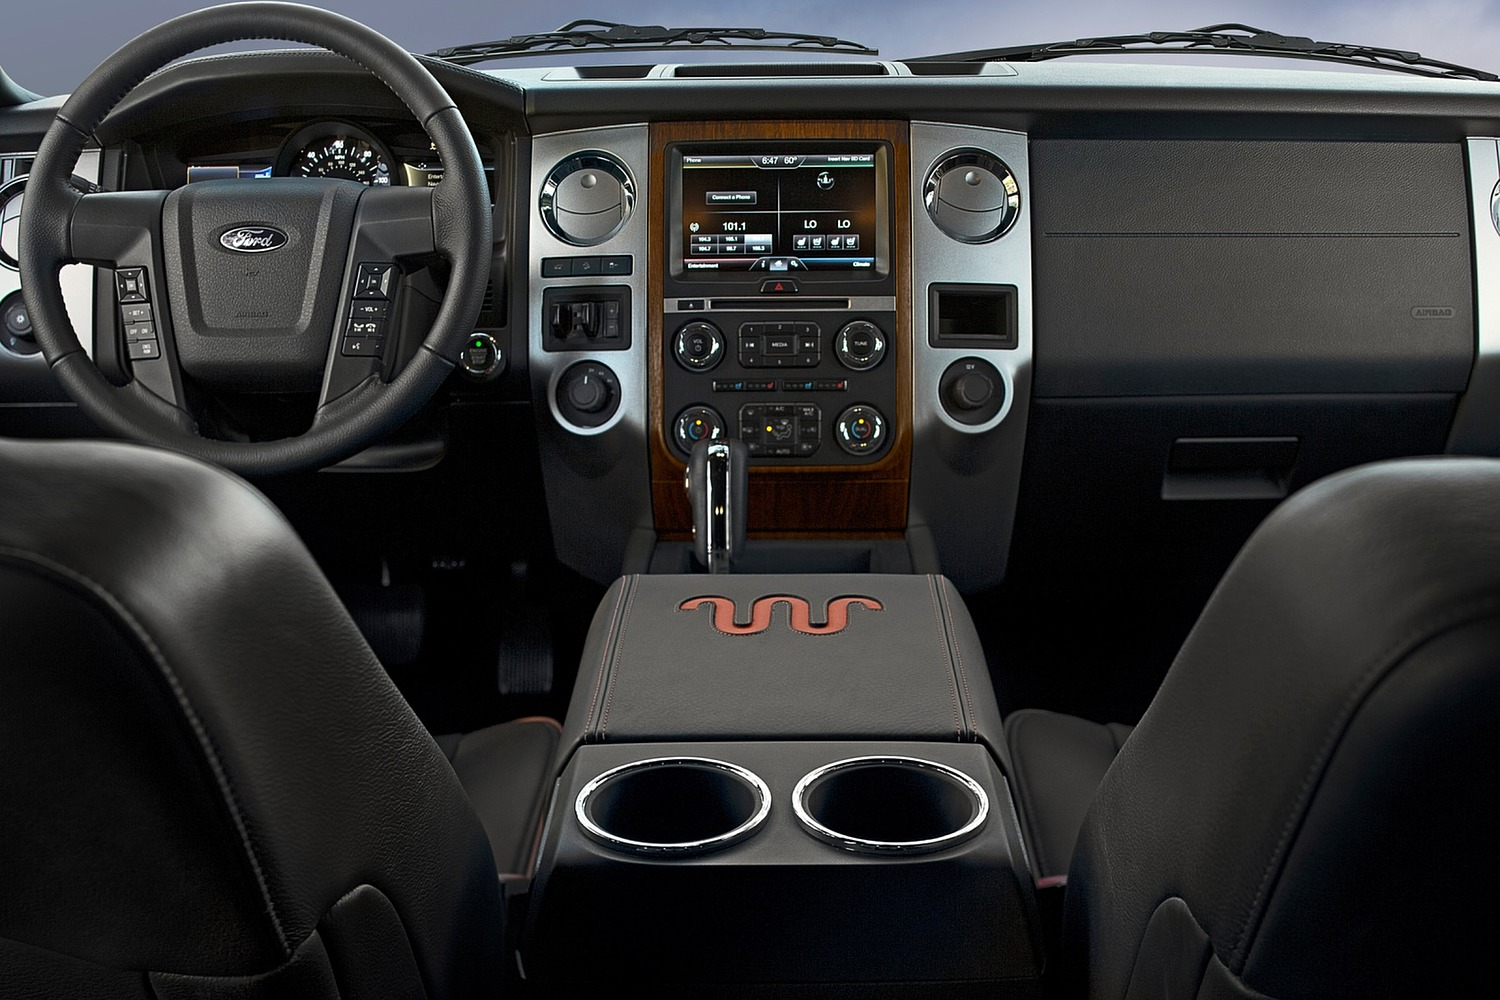 Ford Expedition King Ranch 4dr SUV Dashboard Shown (2015 model year shown)